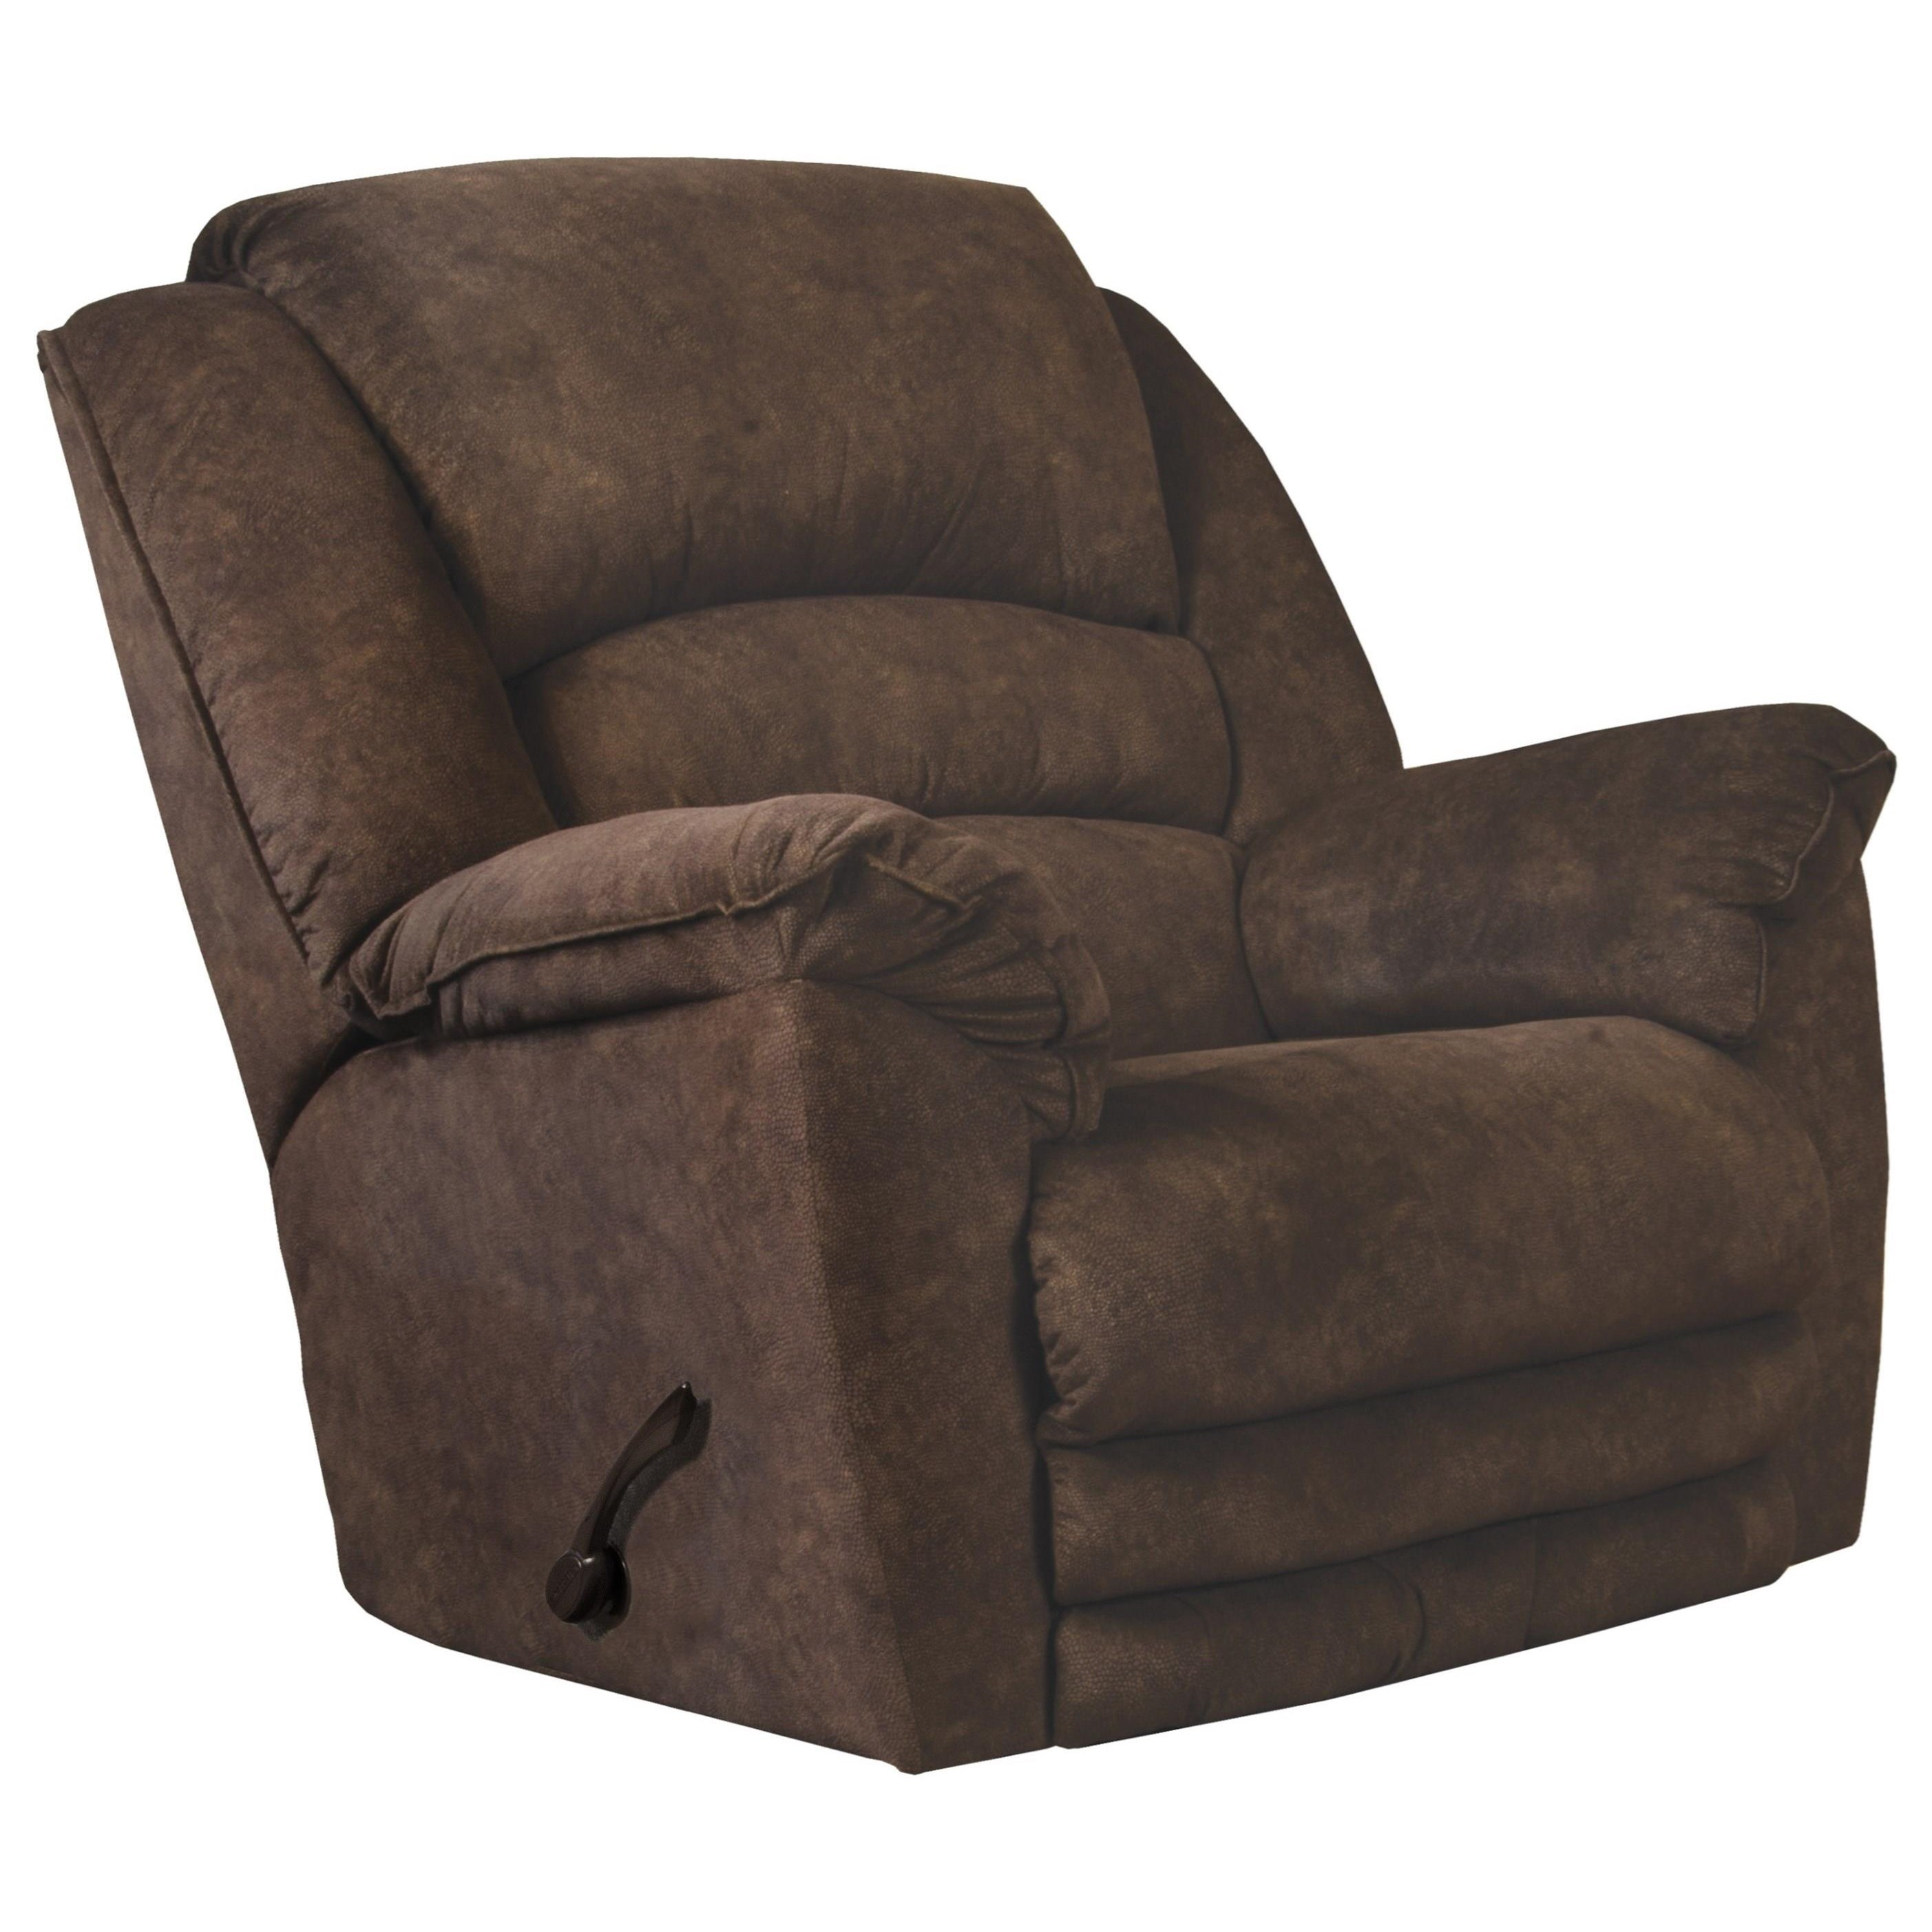 Rialto Chaise Rocker Recliner w/ Extended Footrest by Catnapper at Northeast Factory Direct